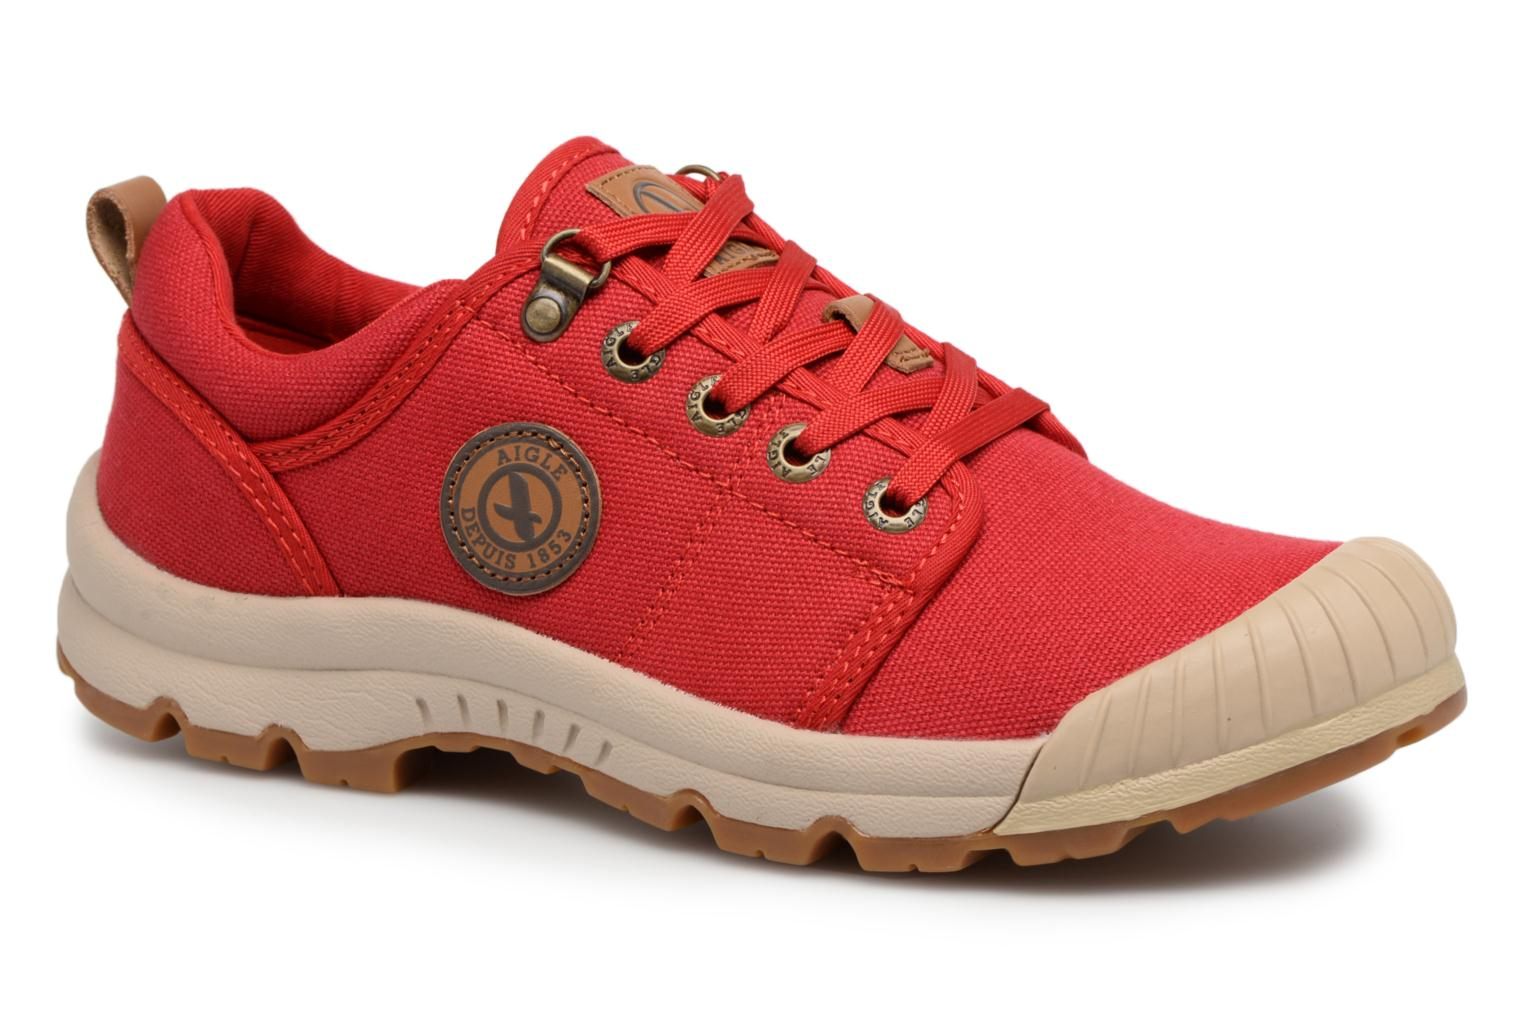 Baskets Aigle Tenere Light Low W Cvs Rouge vue détail/paire